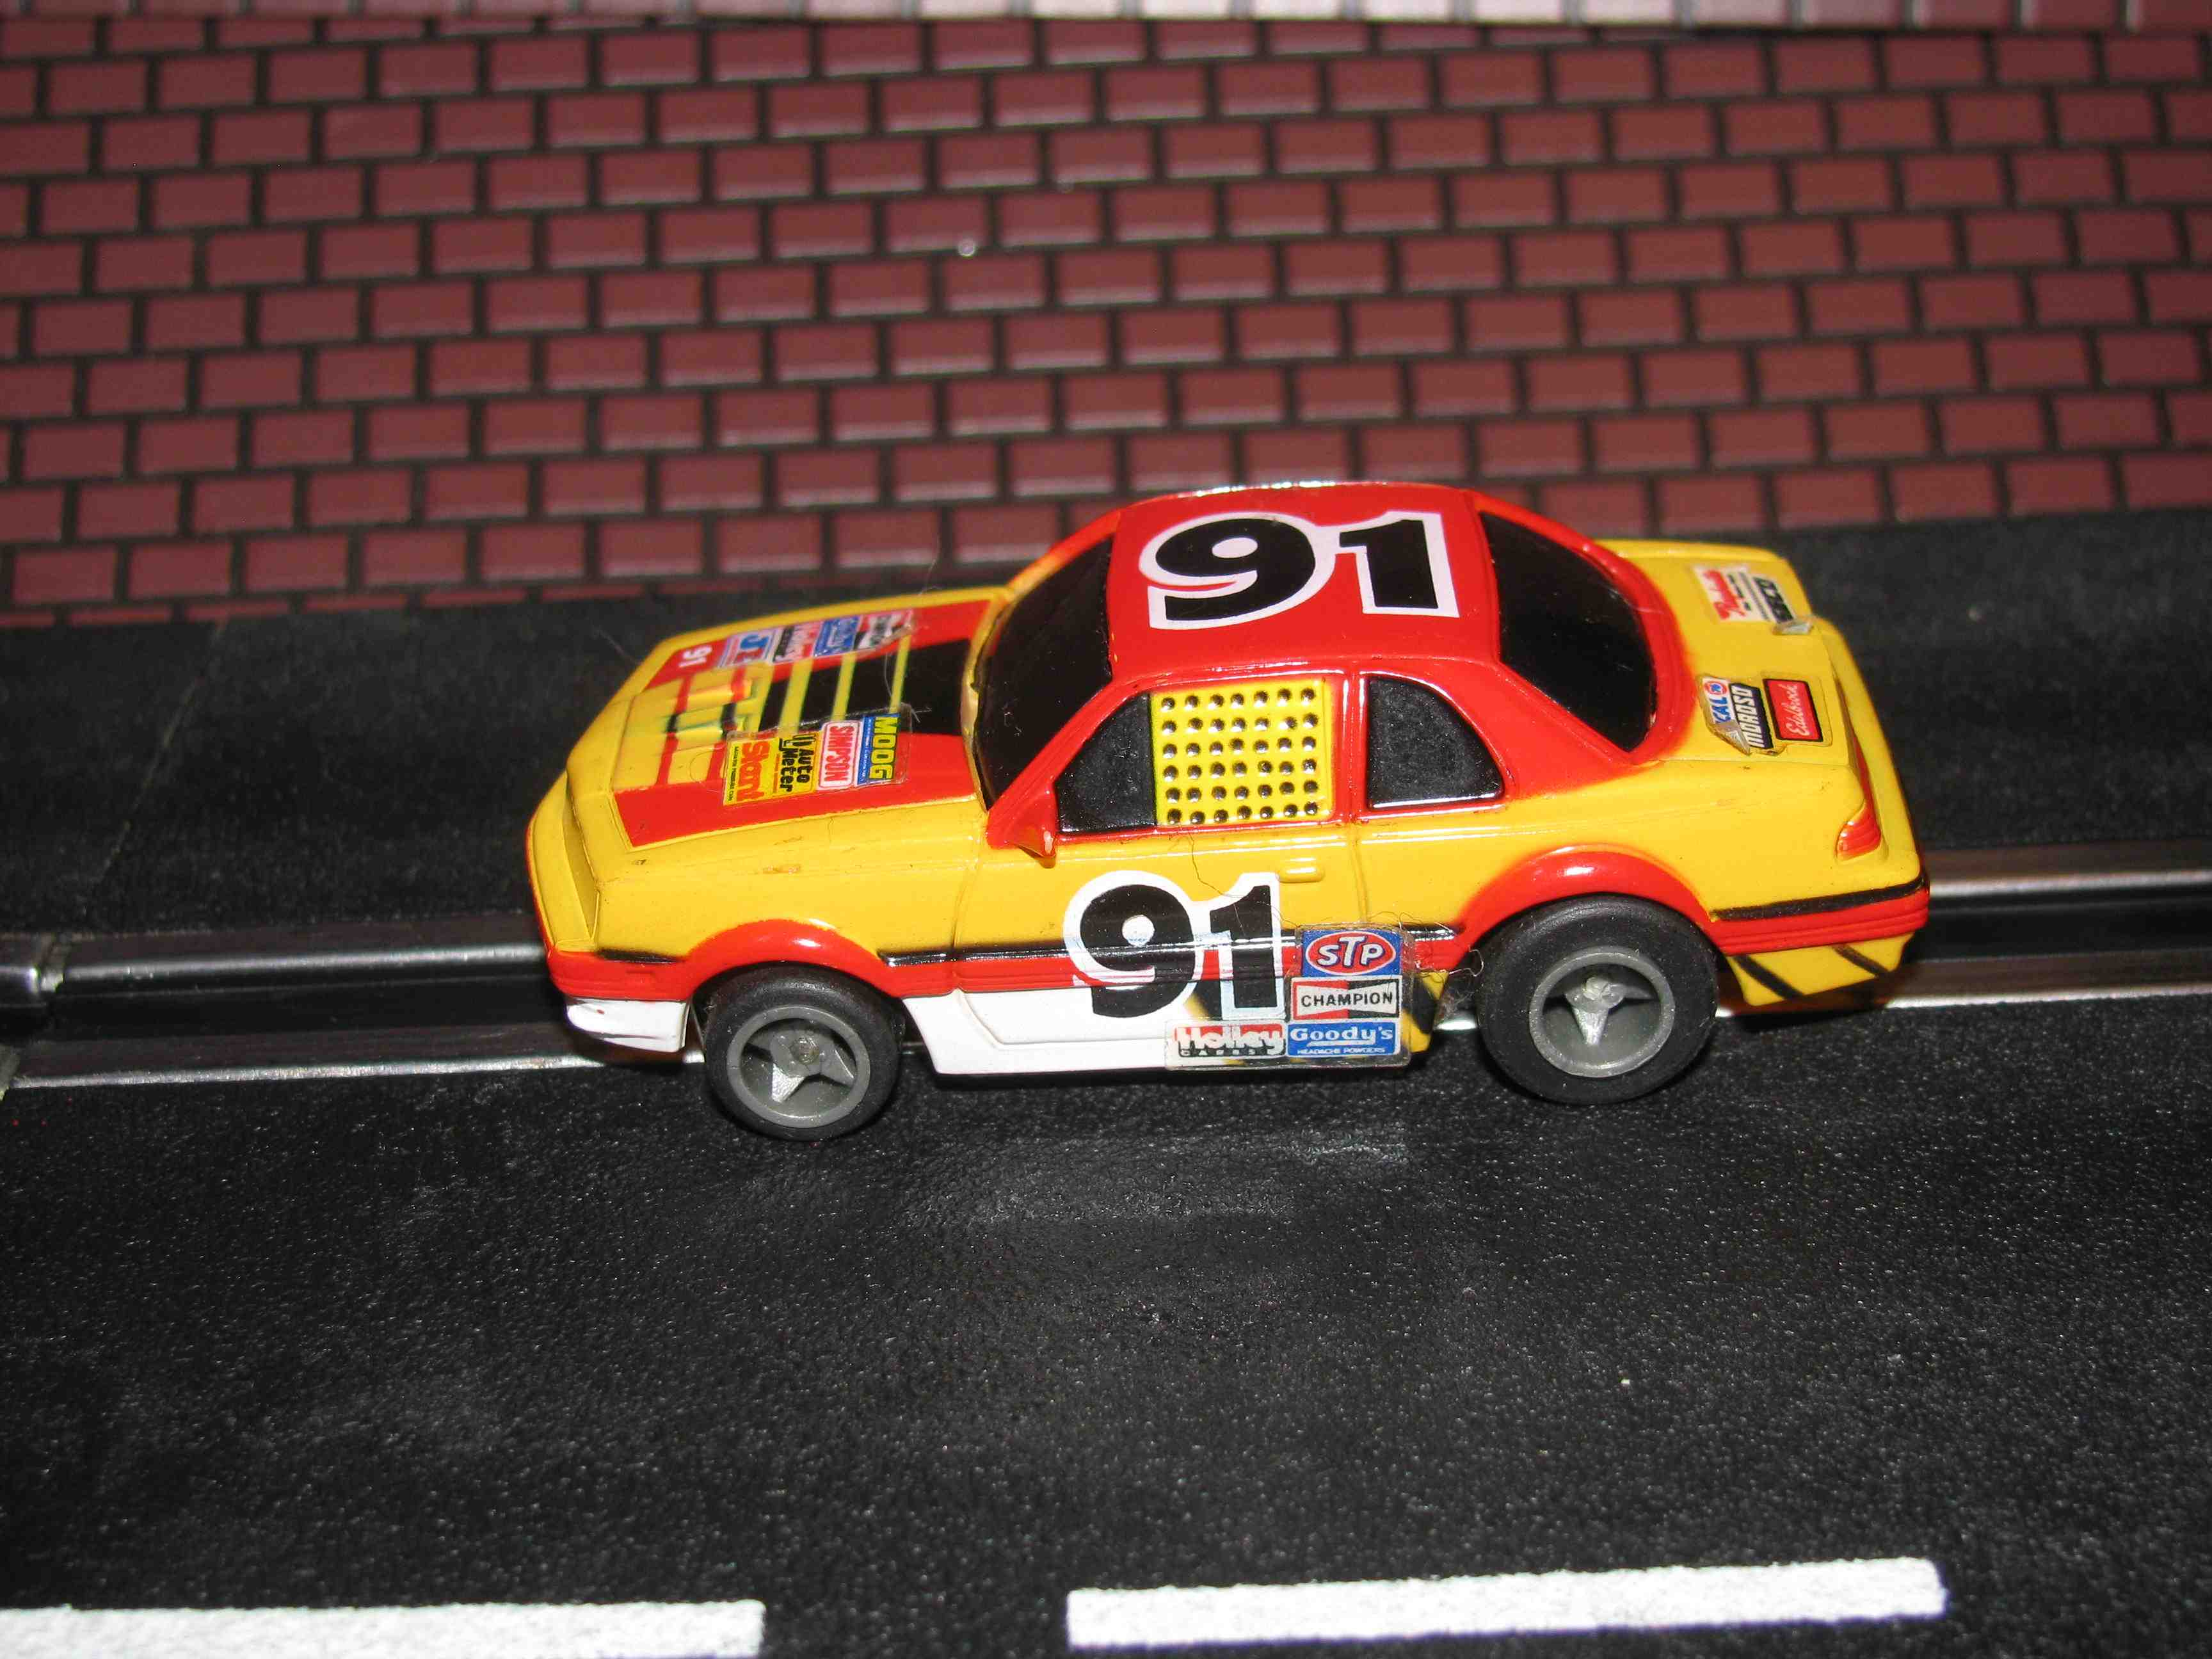 * SOLD * Tyco Like-Like HO Slot Car #91 Rokar (Ford T-Bird) with Guide Post